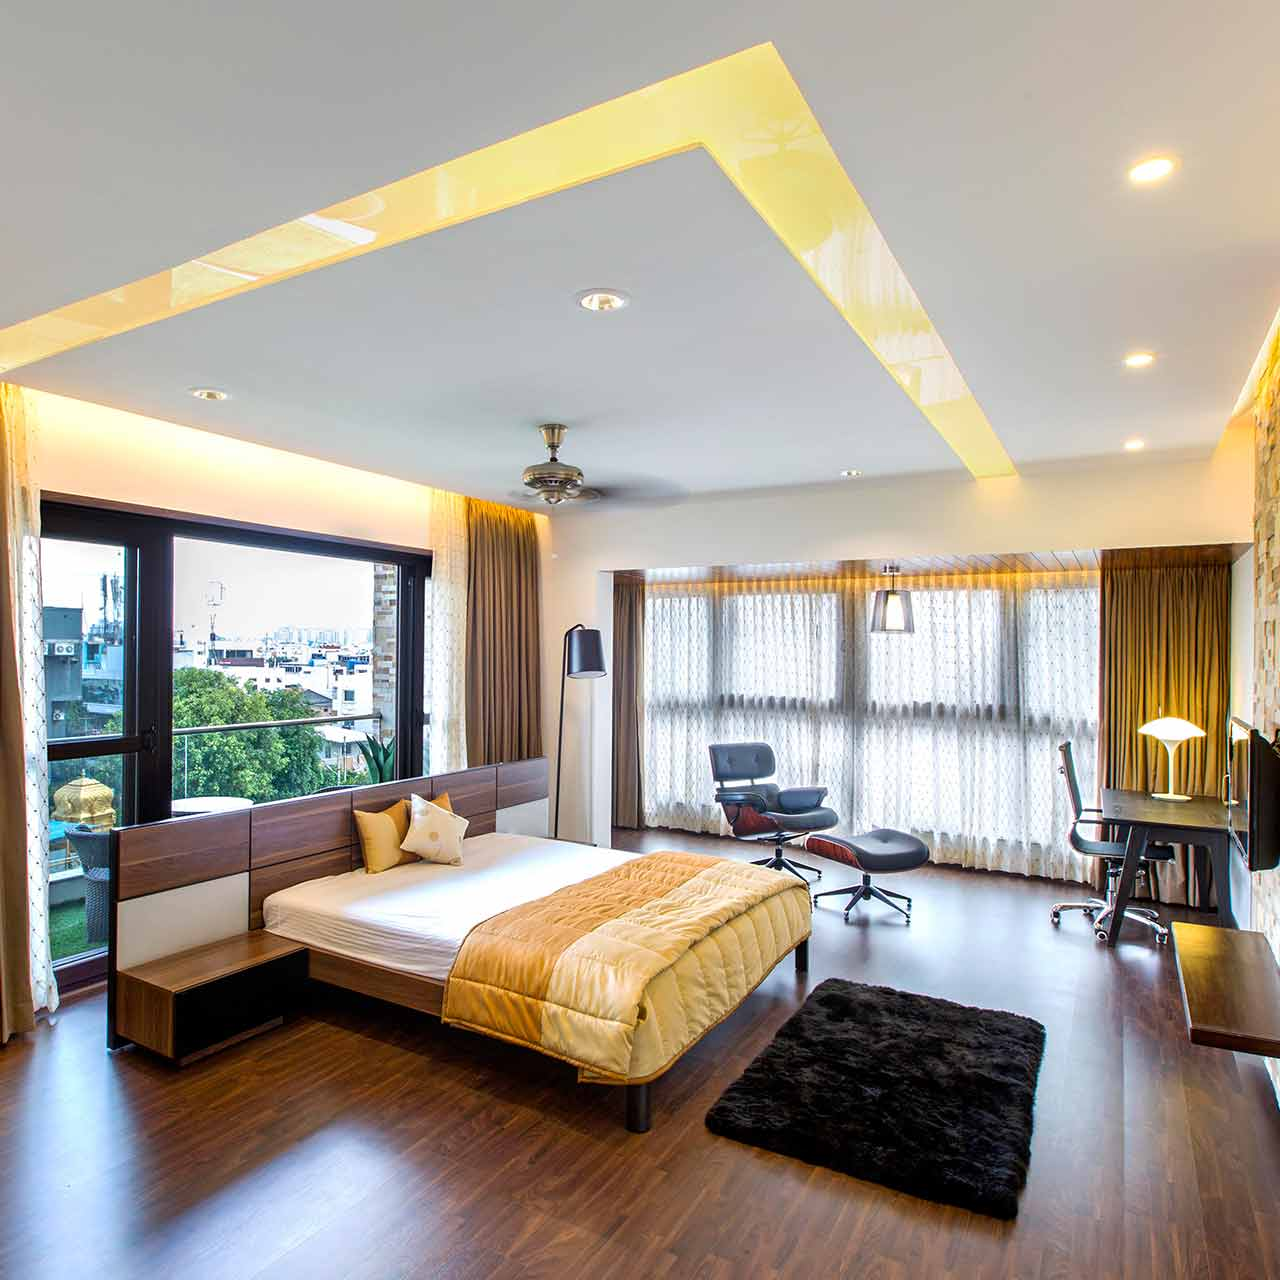 Contemporary style bedroom interior design is characterised by sleek and clean design